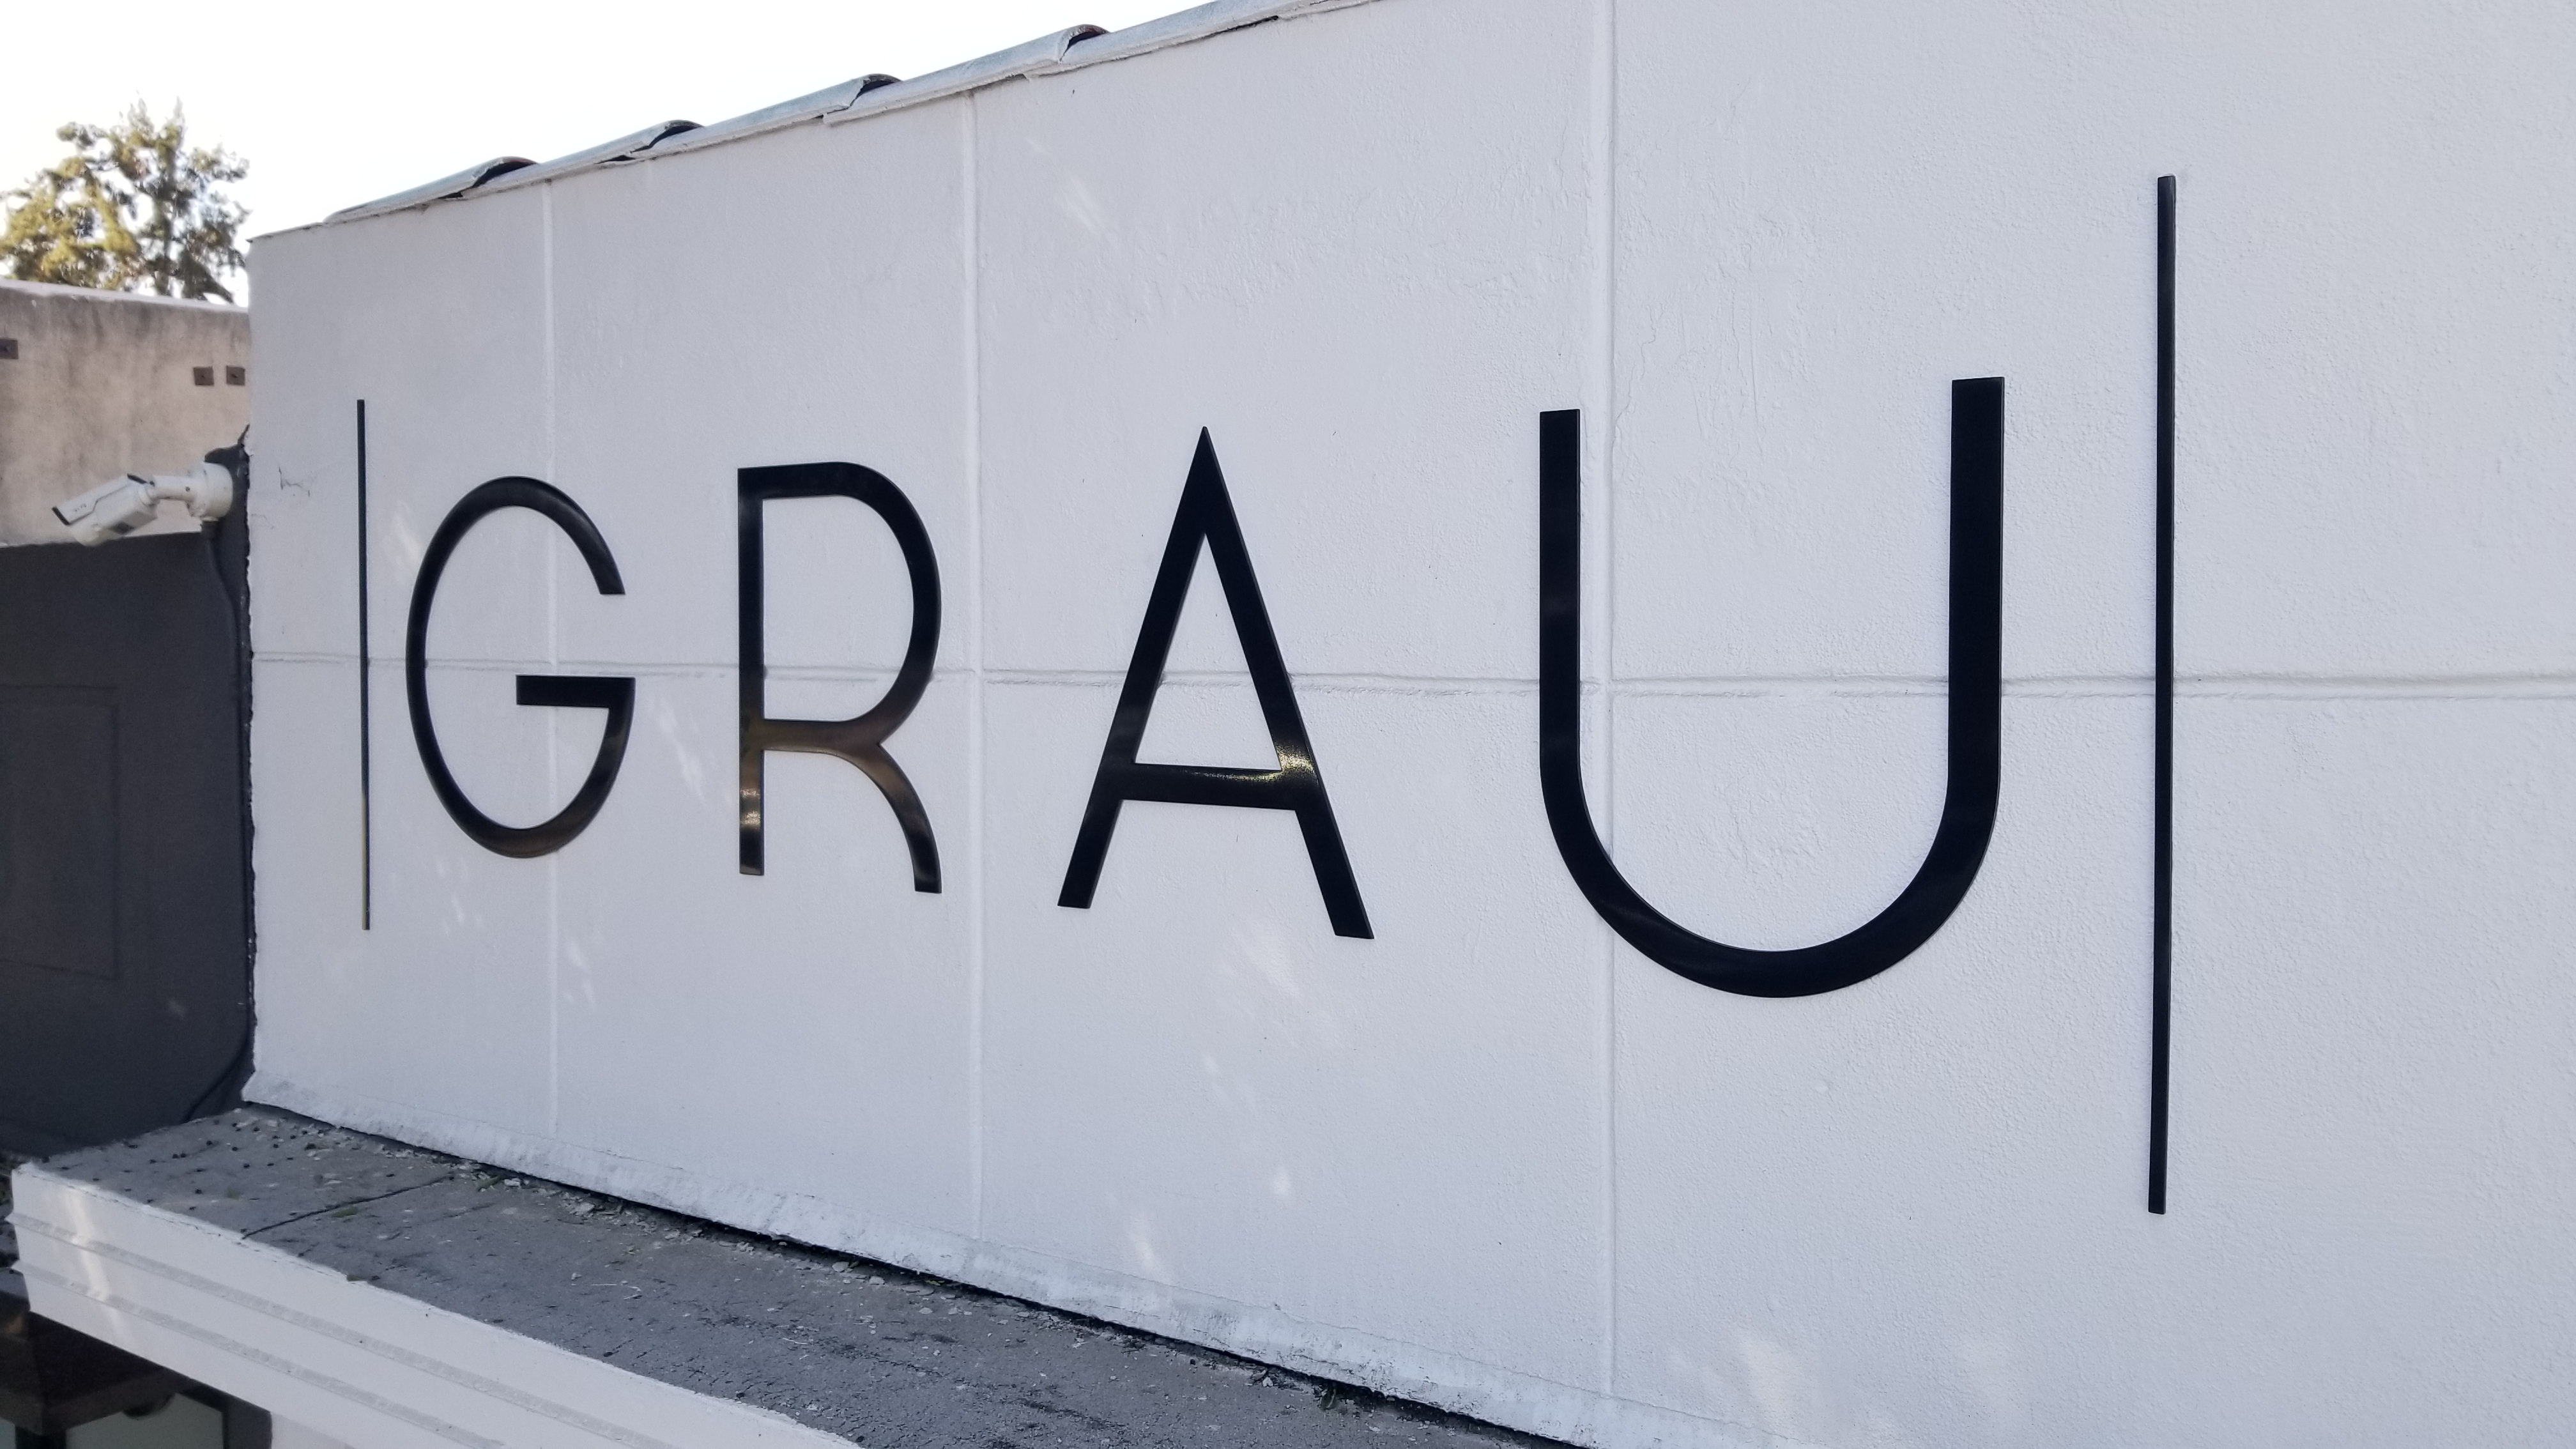 This is the storefront dimensional lettering we fabricated and installed for GRAU Women's Boutique in Burbank.